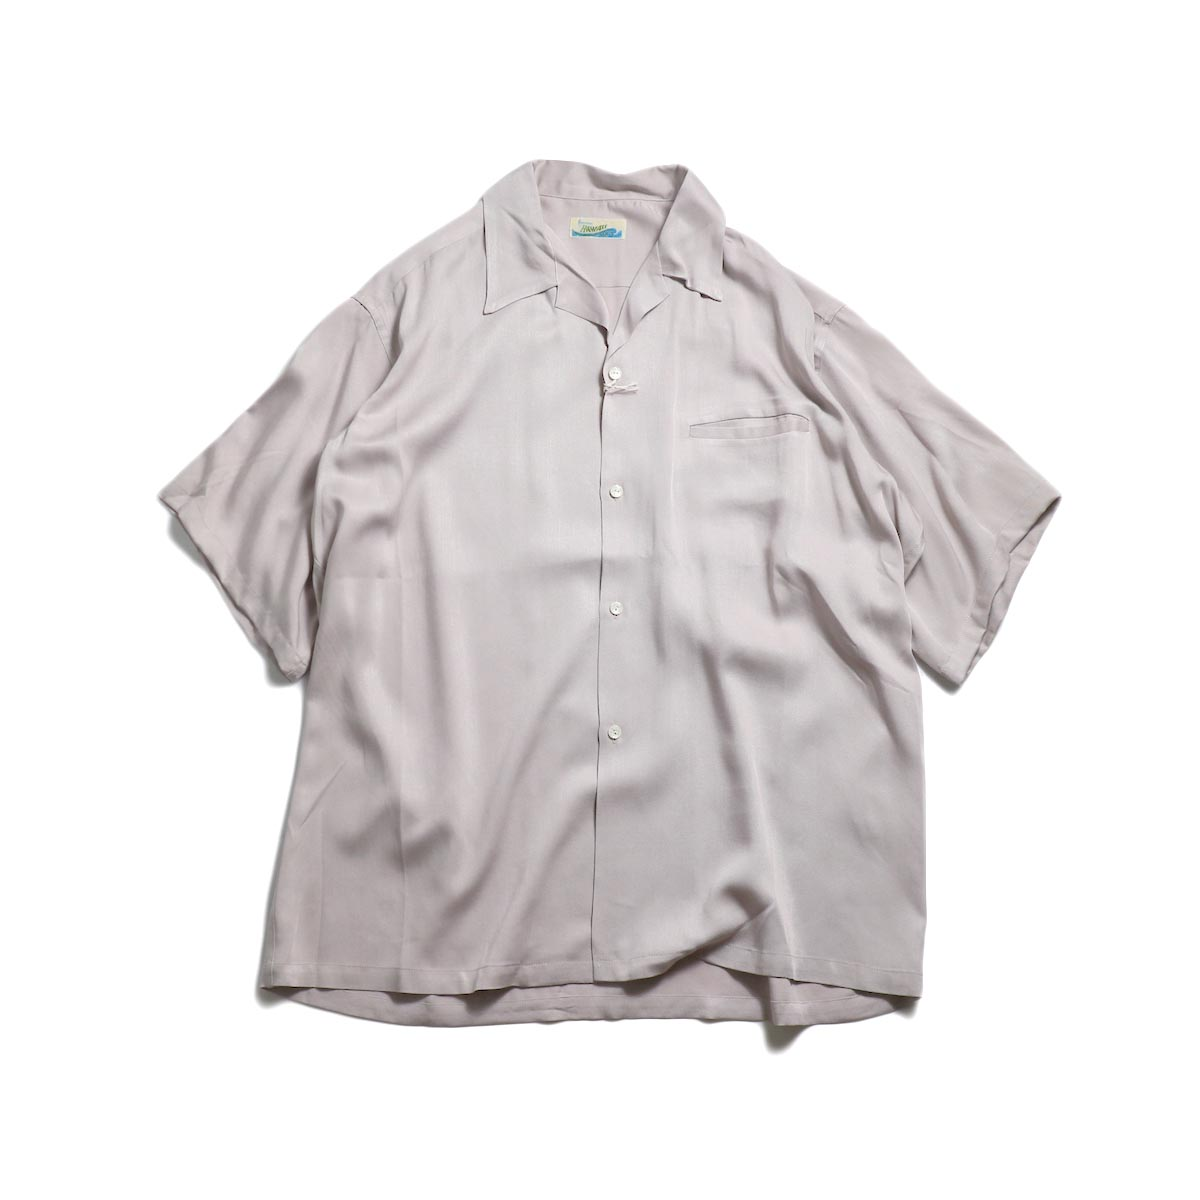 PENNEY'S / Hawaii Solid Shirts -Beige